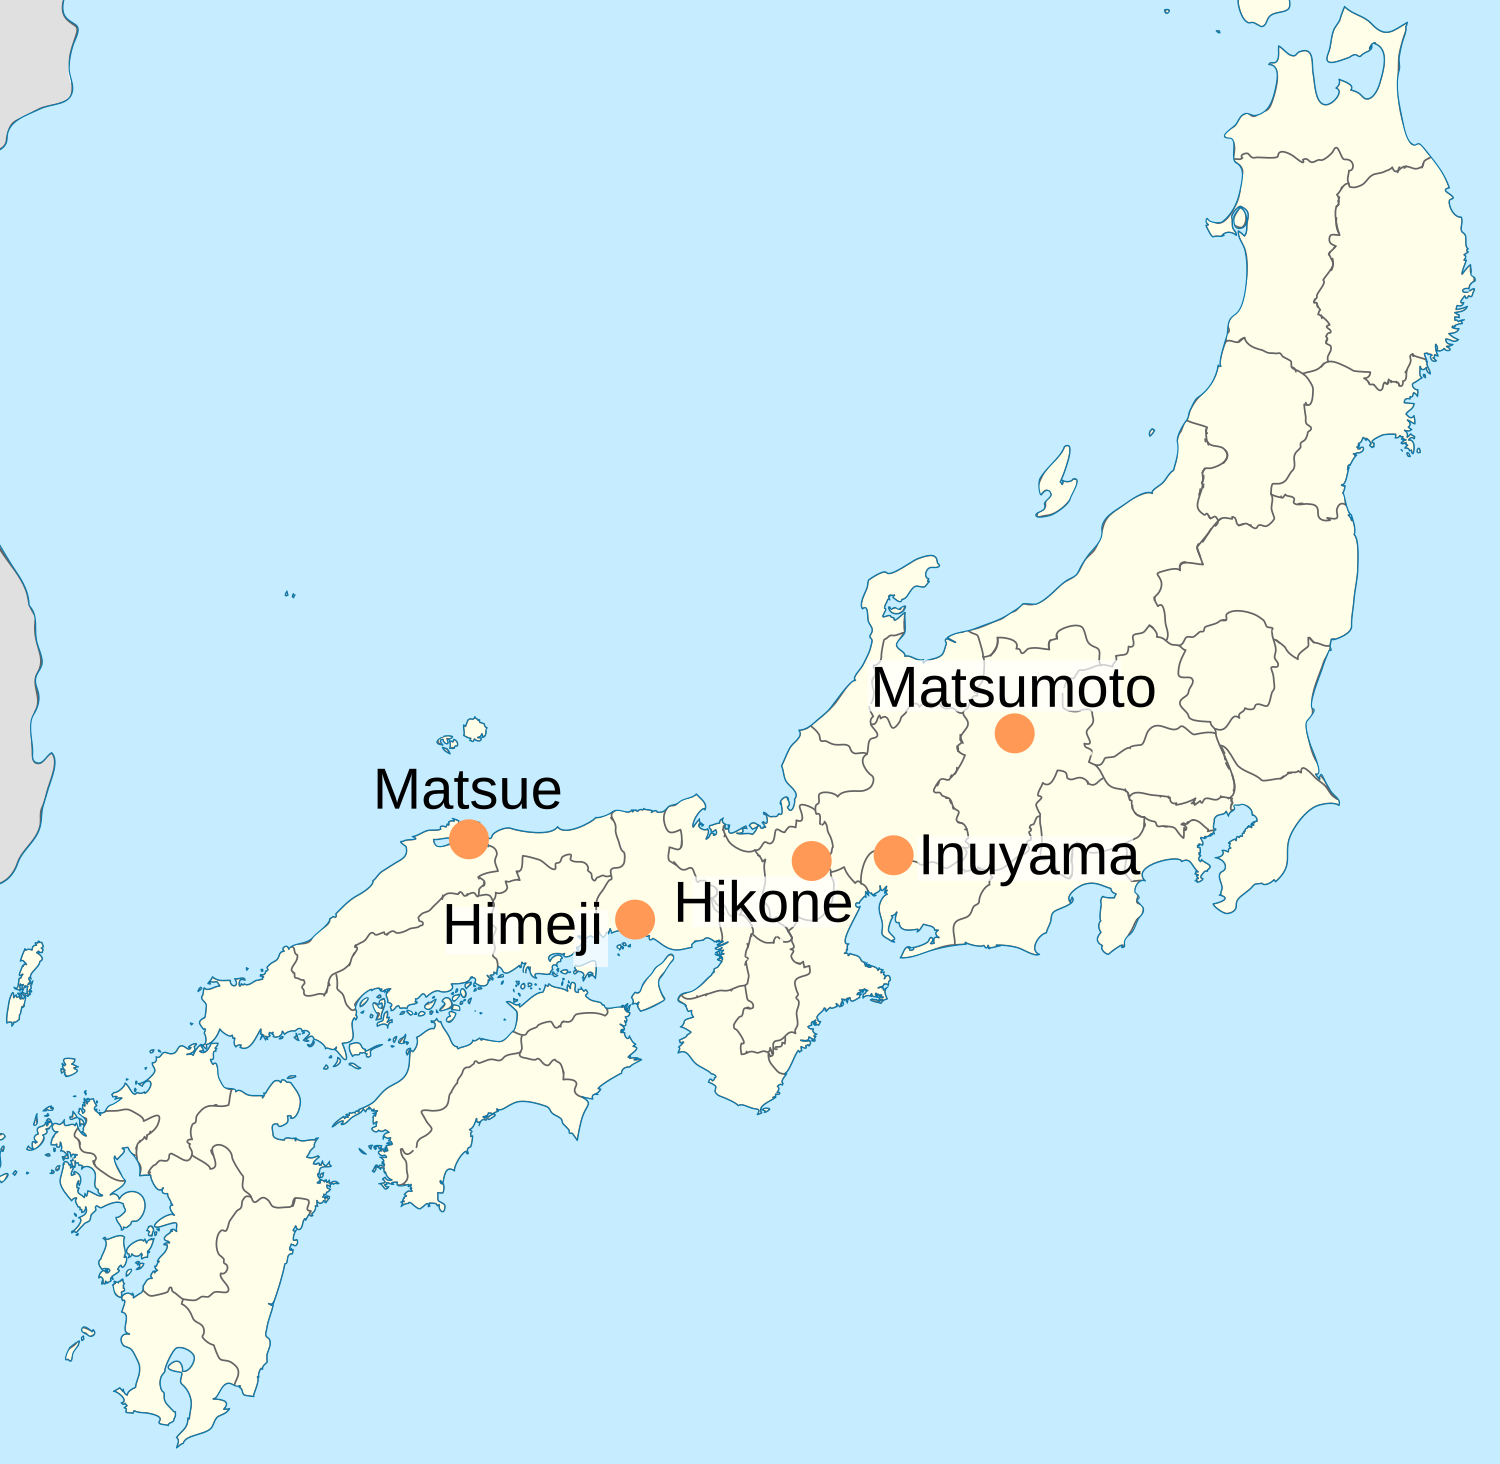 Labeled Map Of Japan - Japan map labeled